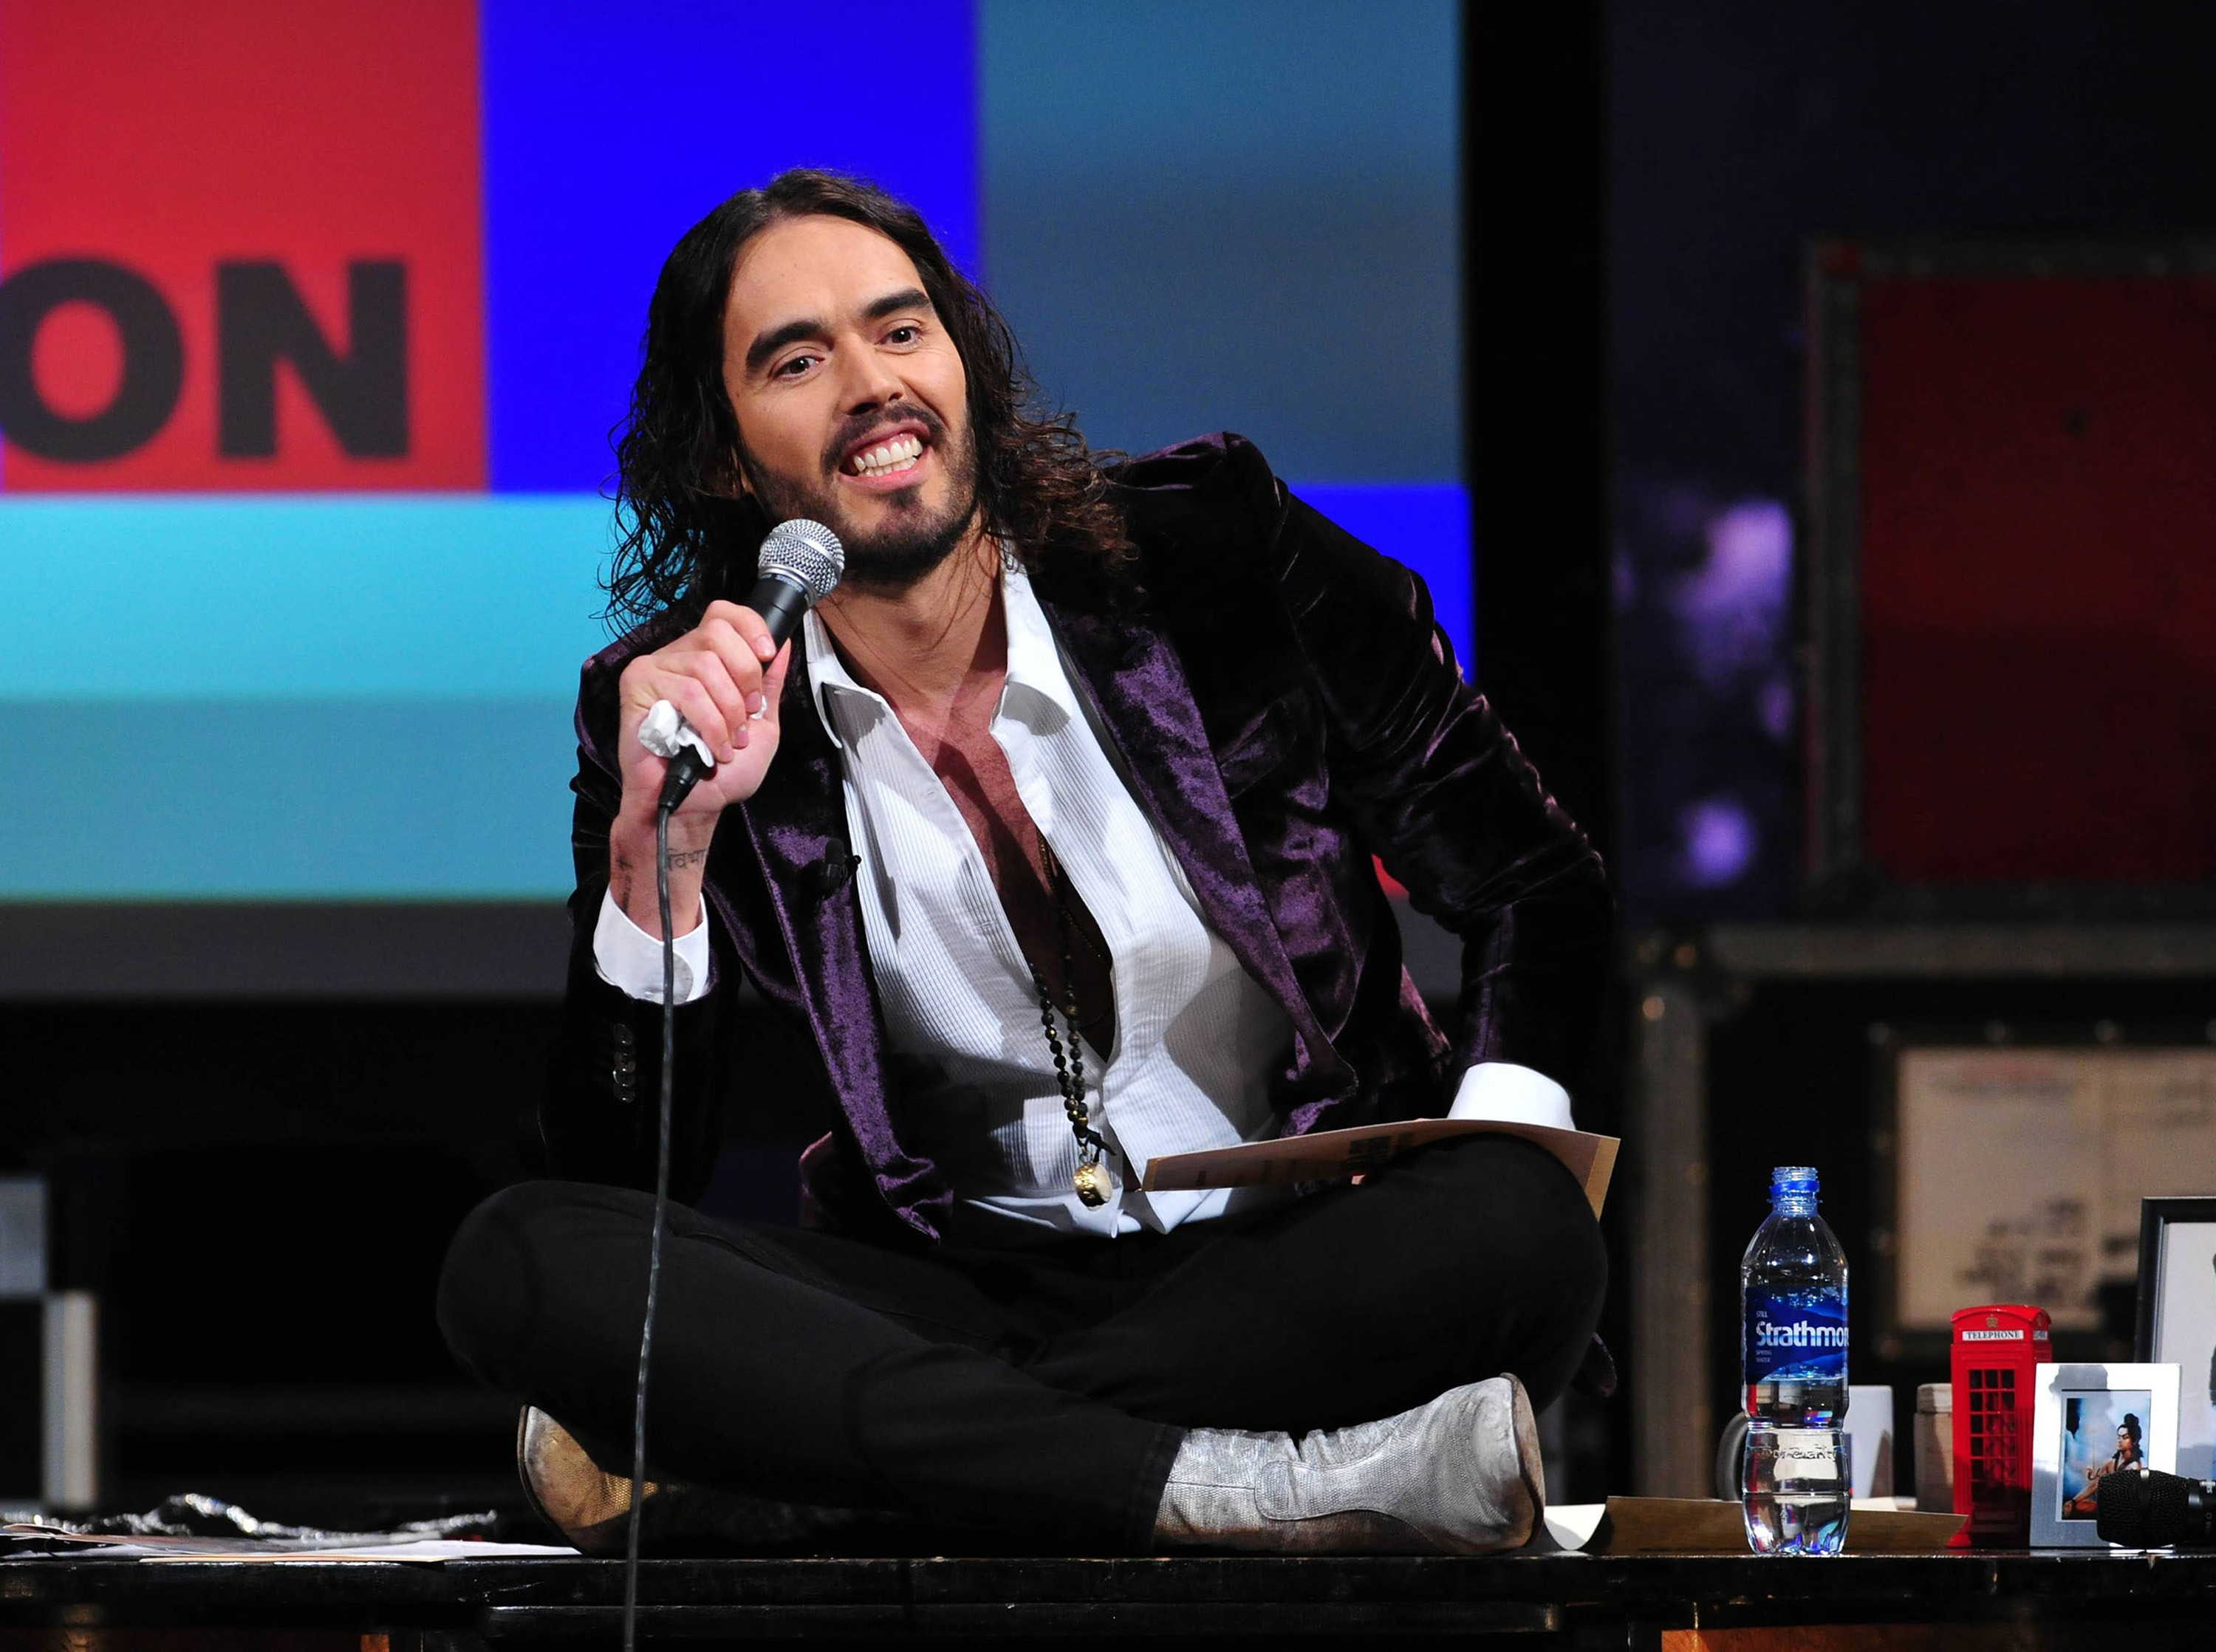 Russell Brand stole the show as guest on 'Morning Joe.'